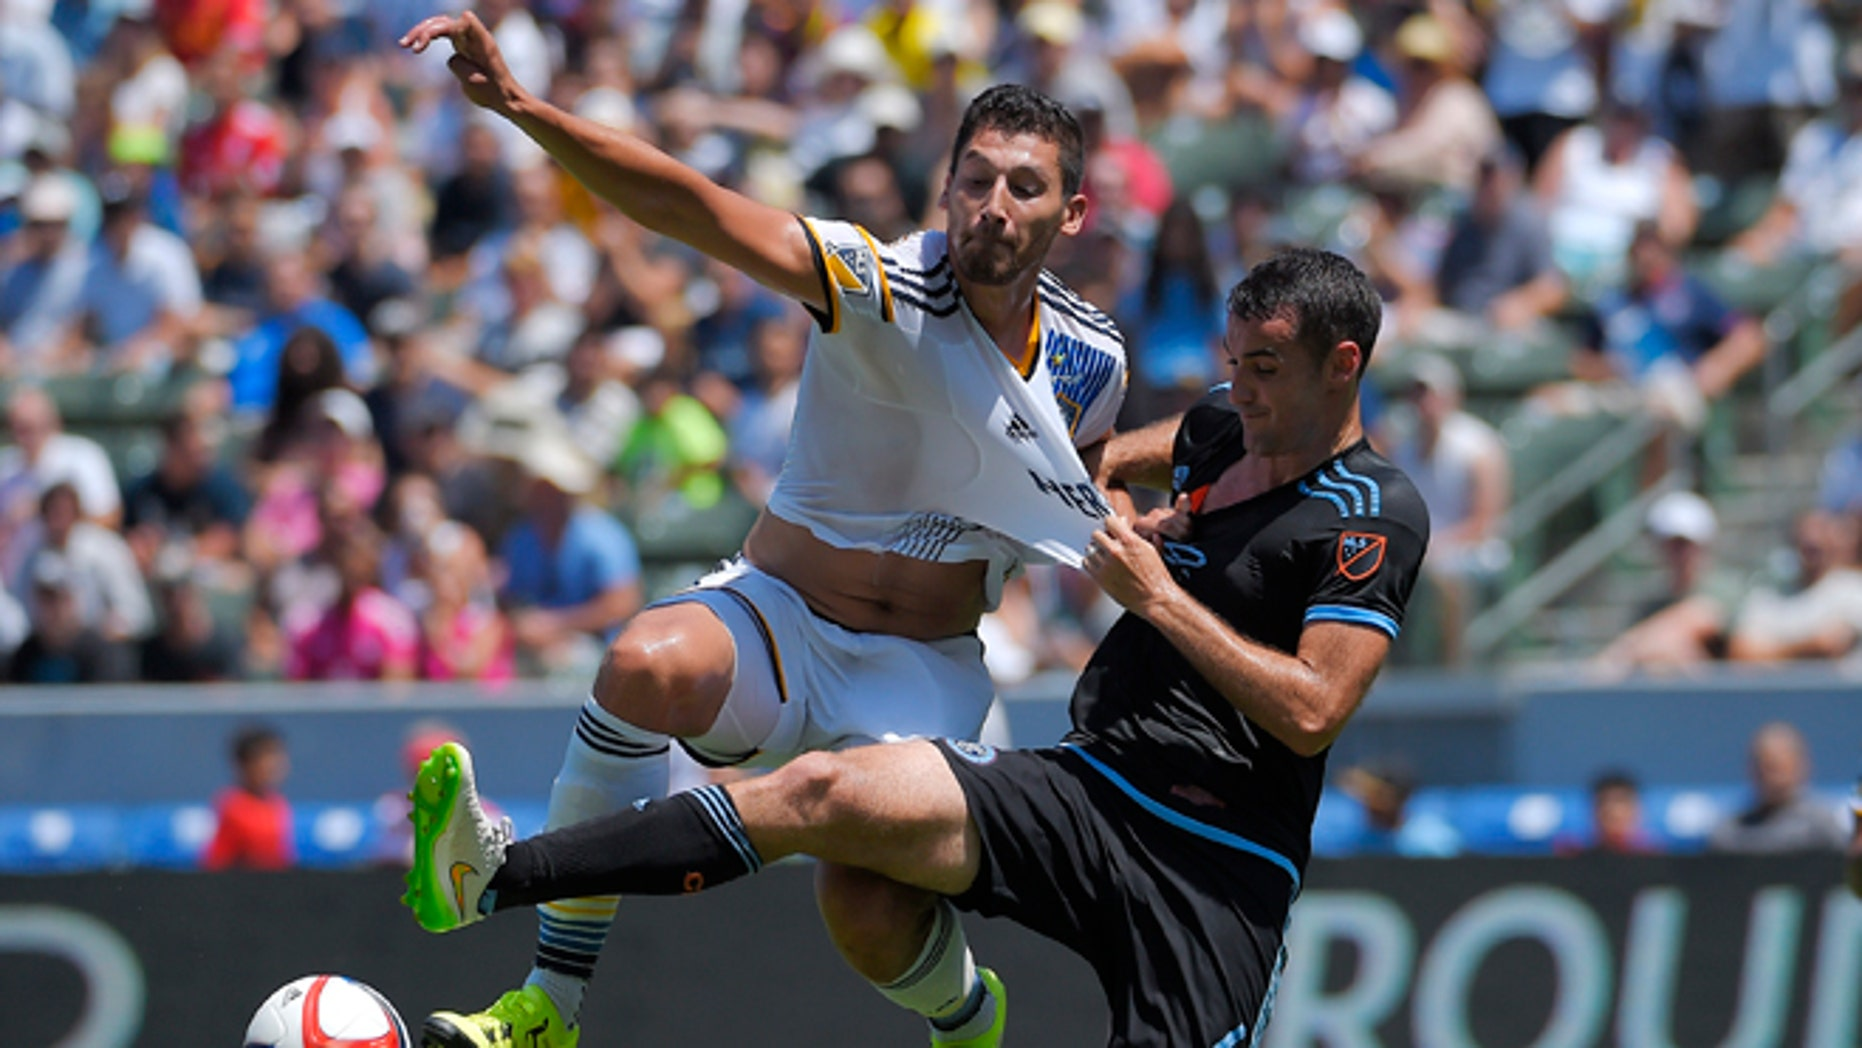 FILE - In this Aug. 23, 2015, file photo, Los Angeles Galaxy defender Omar Gonzalez, left, and New York City FC midfielder Andrew Jacobson battle for the ball during the first half of an MLS soccer match in Carson, Calif. Gonzalez has been transferred from the Galaxy to Mexicoâs Pachuca. The Galaxy announced the move Tuesday, Dec. 22. (AP Photo/Mark J. Terrill, File)